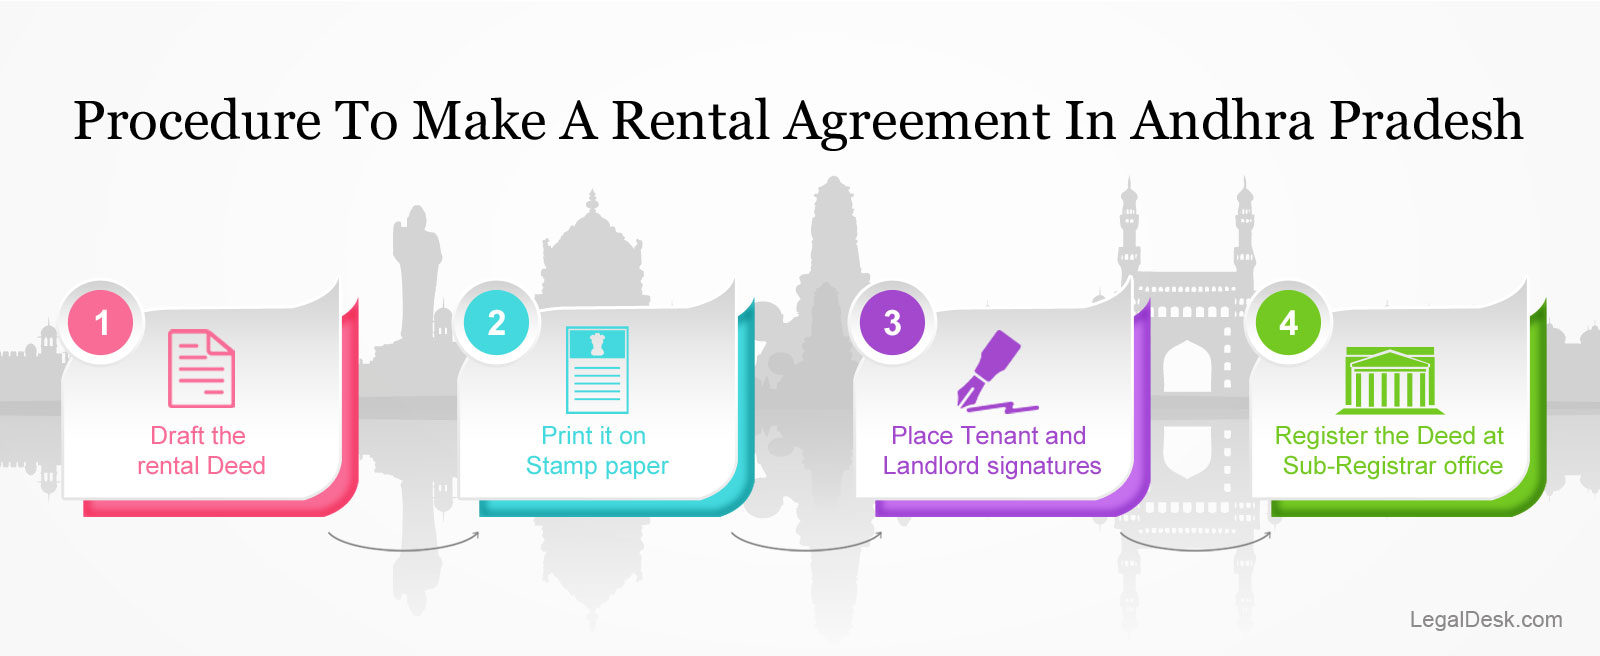 How To Make A Rental Agreement In Hyderabad And Telangana